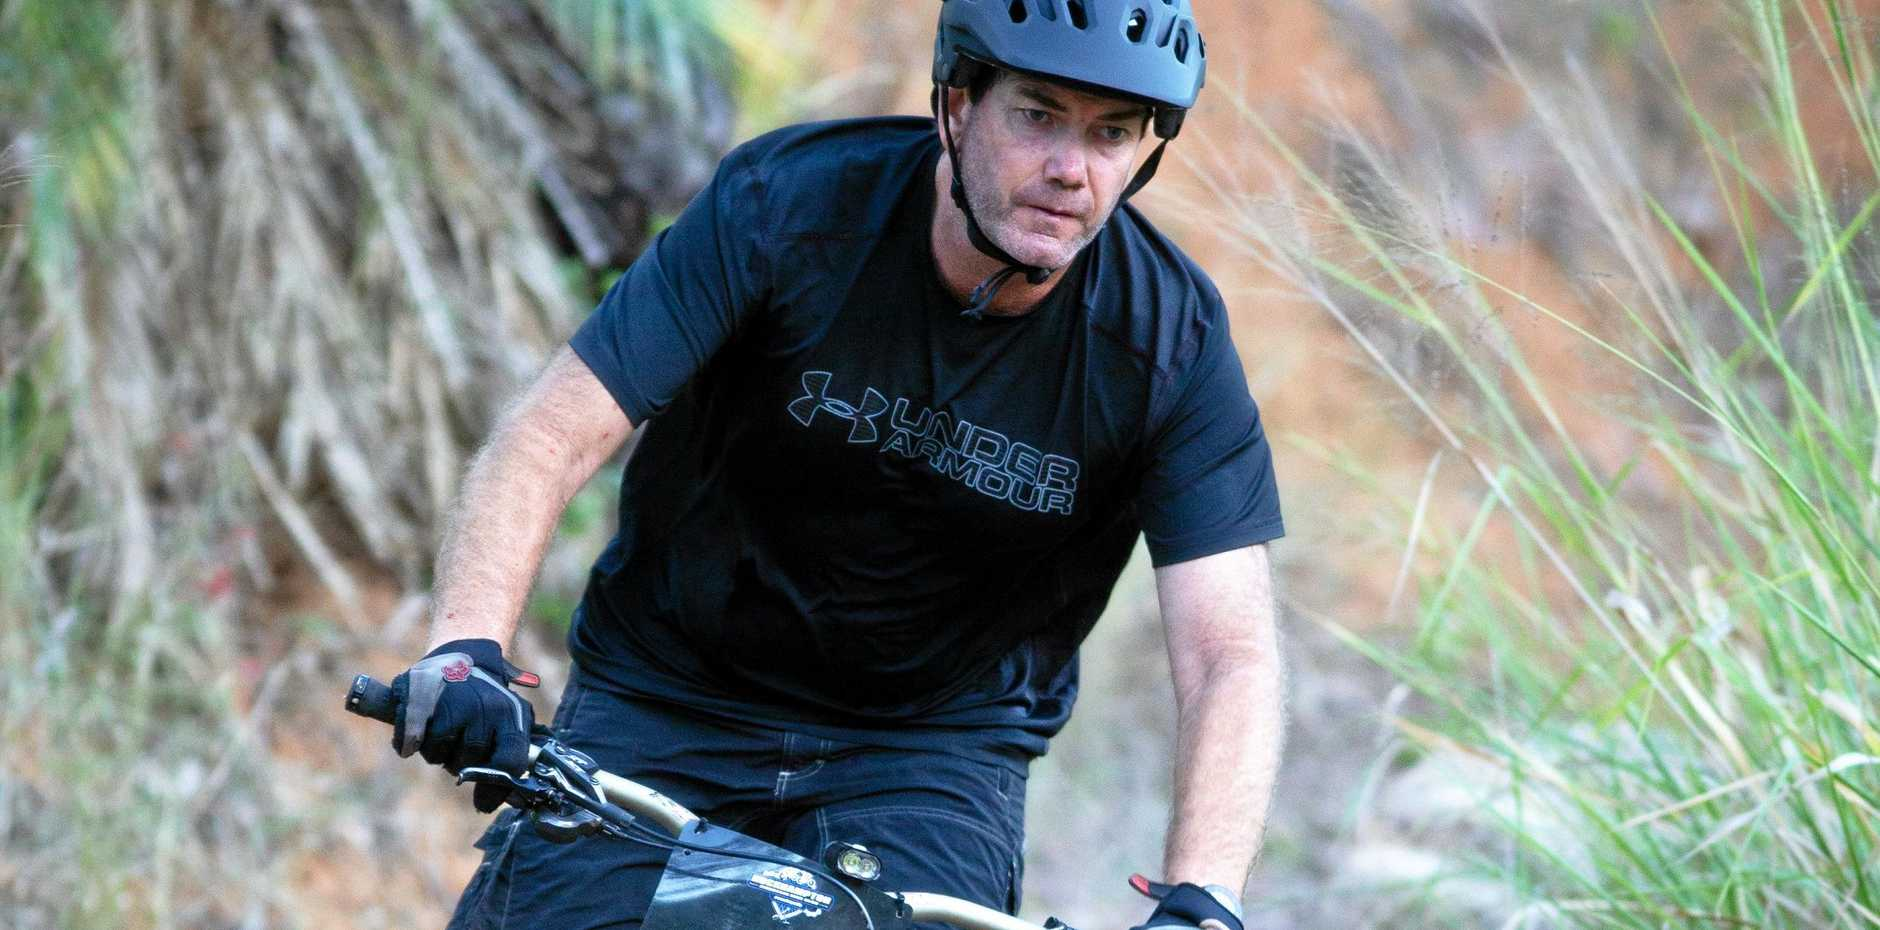 CHALLENGING COURSE: Shane Perriman was among the 51 riders who took on the trails at First Turkey on Saturday.